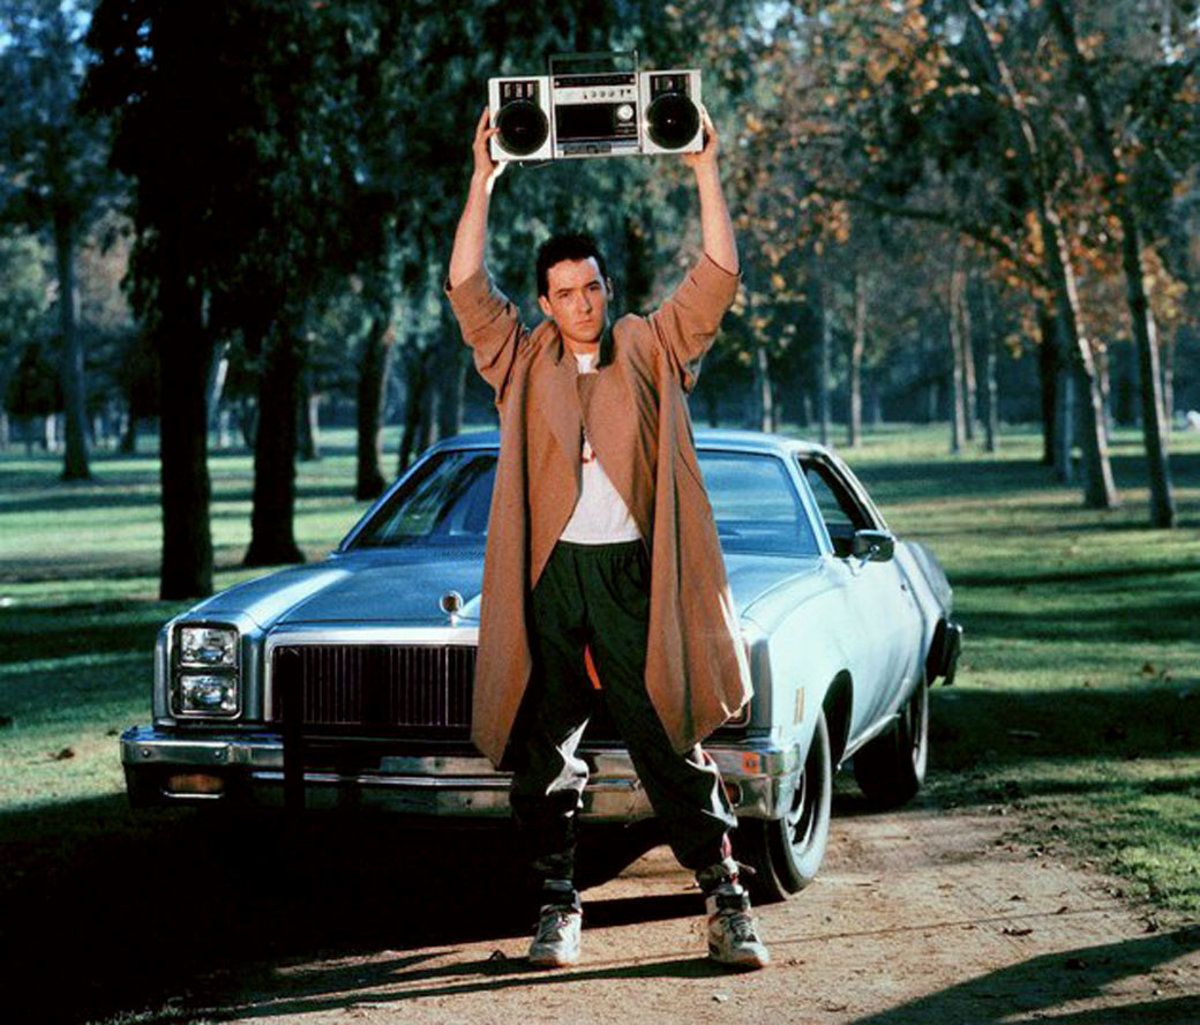 """Best music in a romantic movie - Peter Gabriel's """"In Your Eyes"""""""